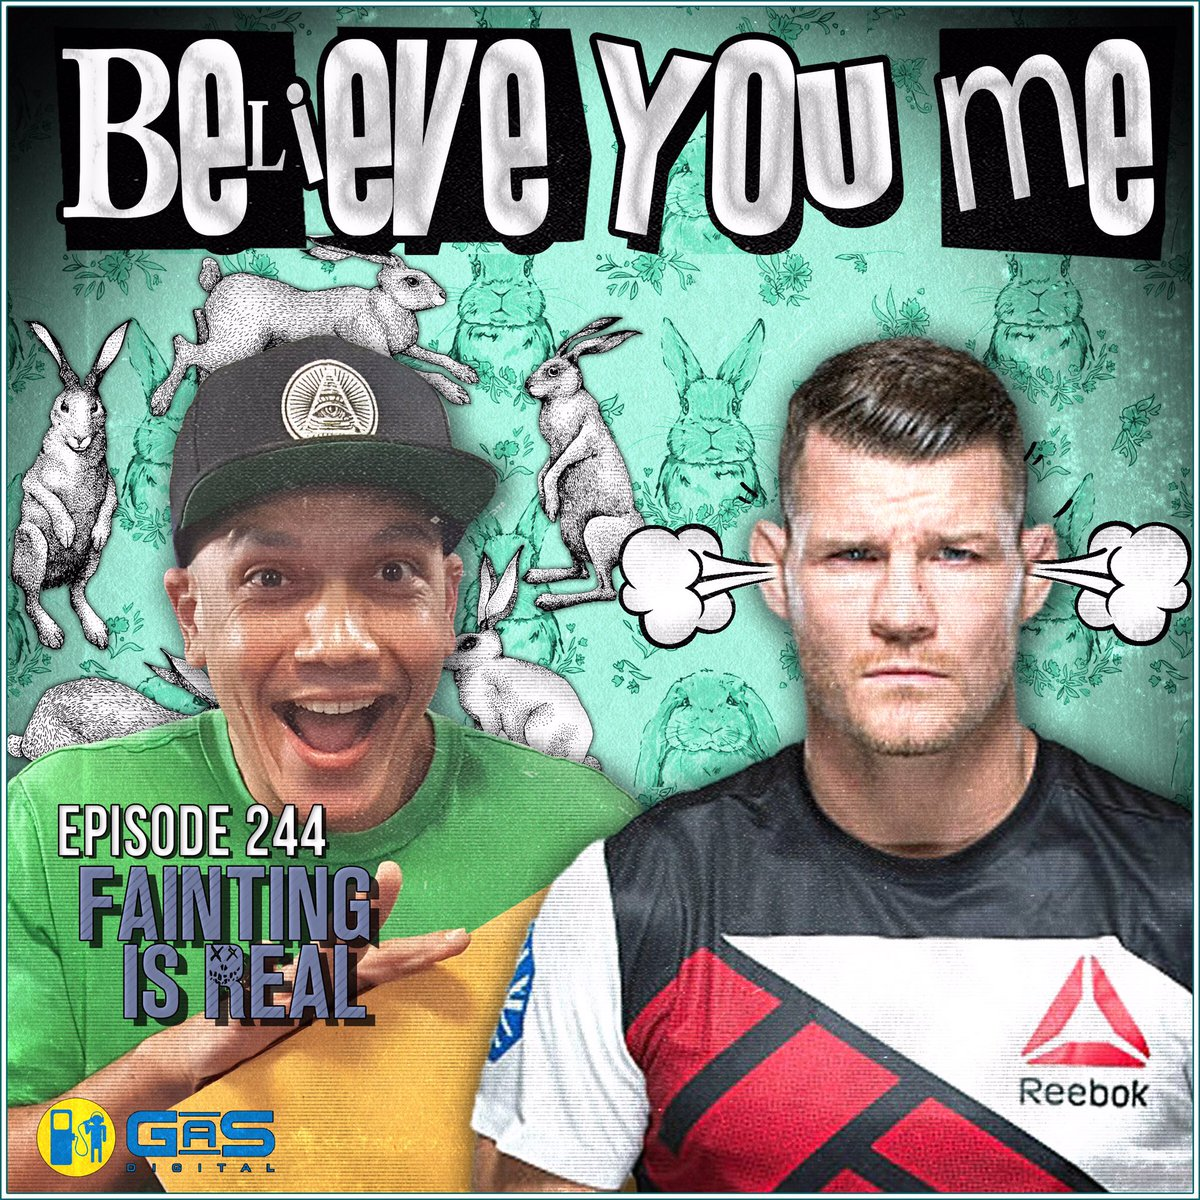 It's a brand new #BelieveYouMe with @bisping and @luisjgomez talking #UFCApex5 Woodley vs Colby, Malignaggi vs Showtime and so much more!   Watch on YouTube or download wherever you find podcasts! Great all links here!   https://t.co/3zQRzcGL7a https://t.co/E94S4uD4nX